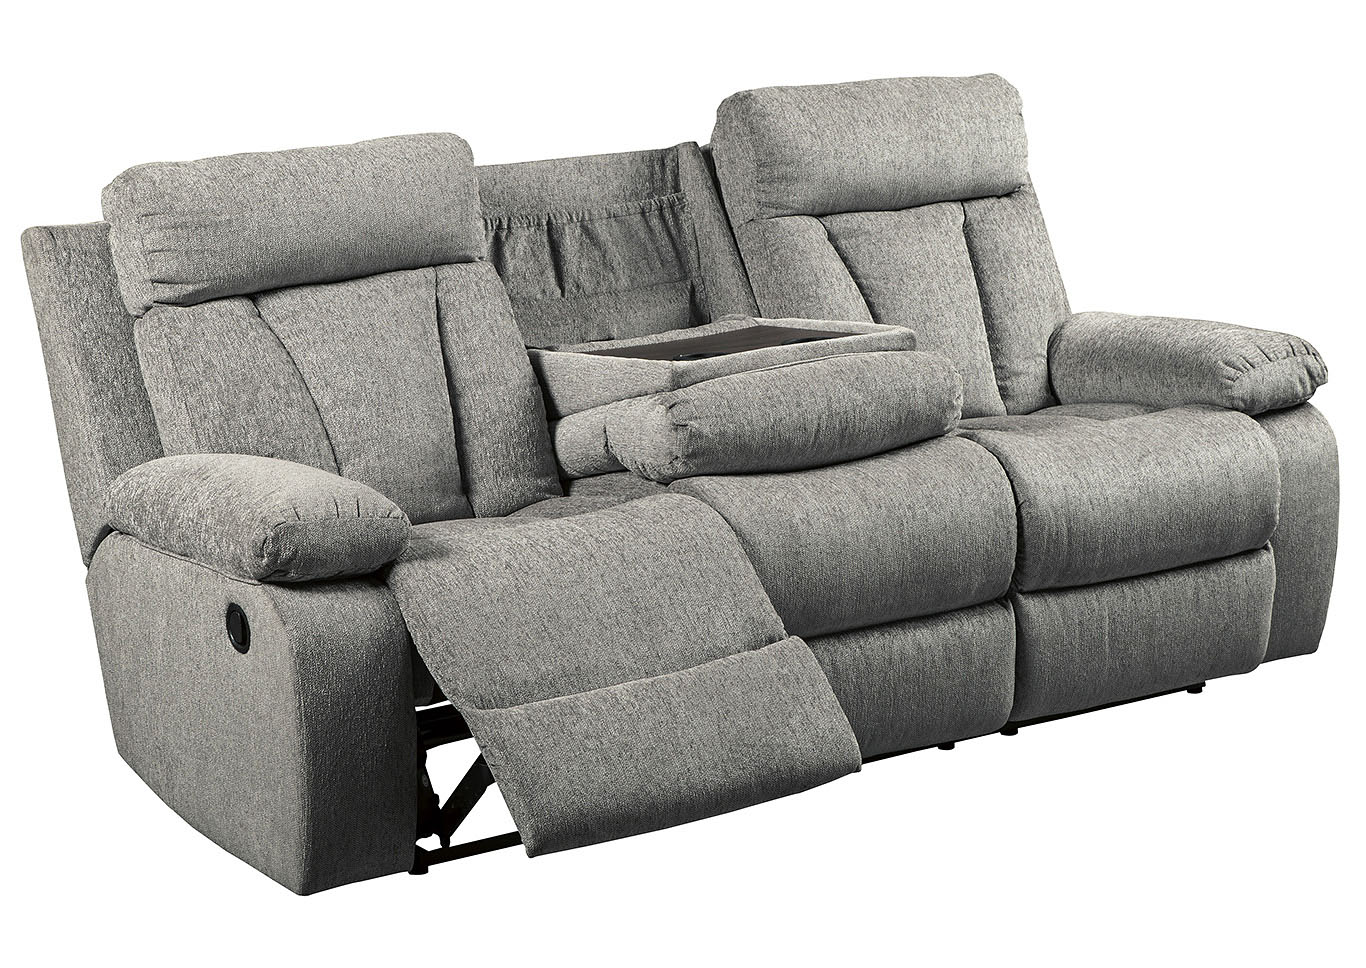 Mitchiner Fog Reclining Sofa w/Drop Down Table,Signature Design By Ashley